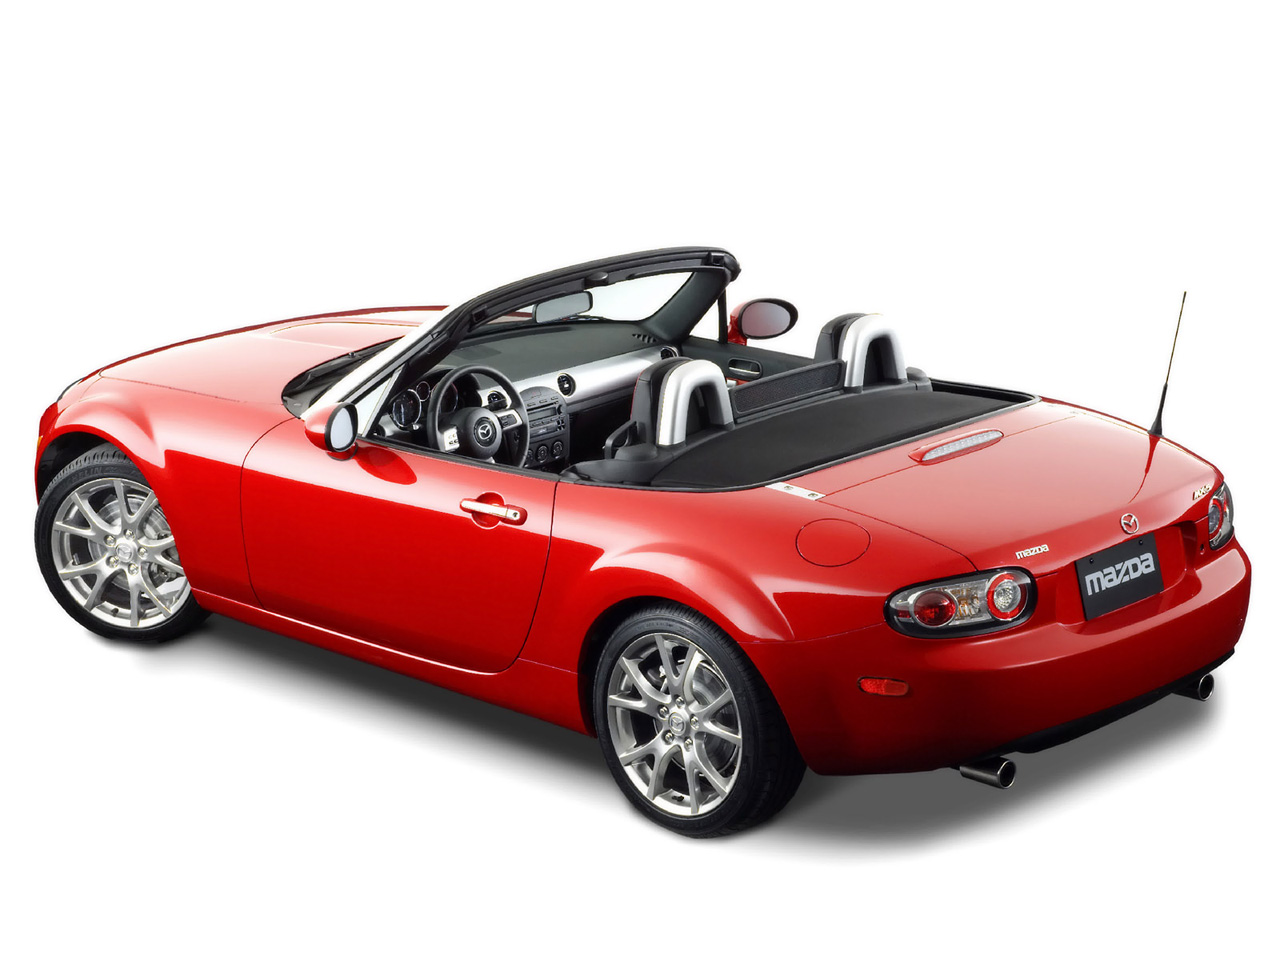 Mazda MX-5 Miata Limited Wallpapers | Car Wallpapers and Backgrounds